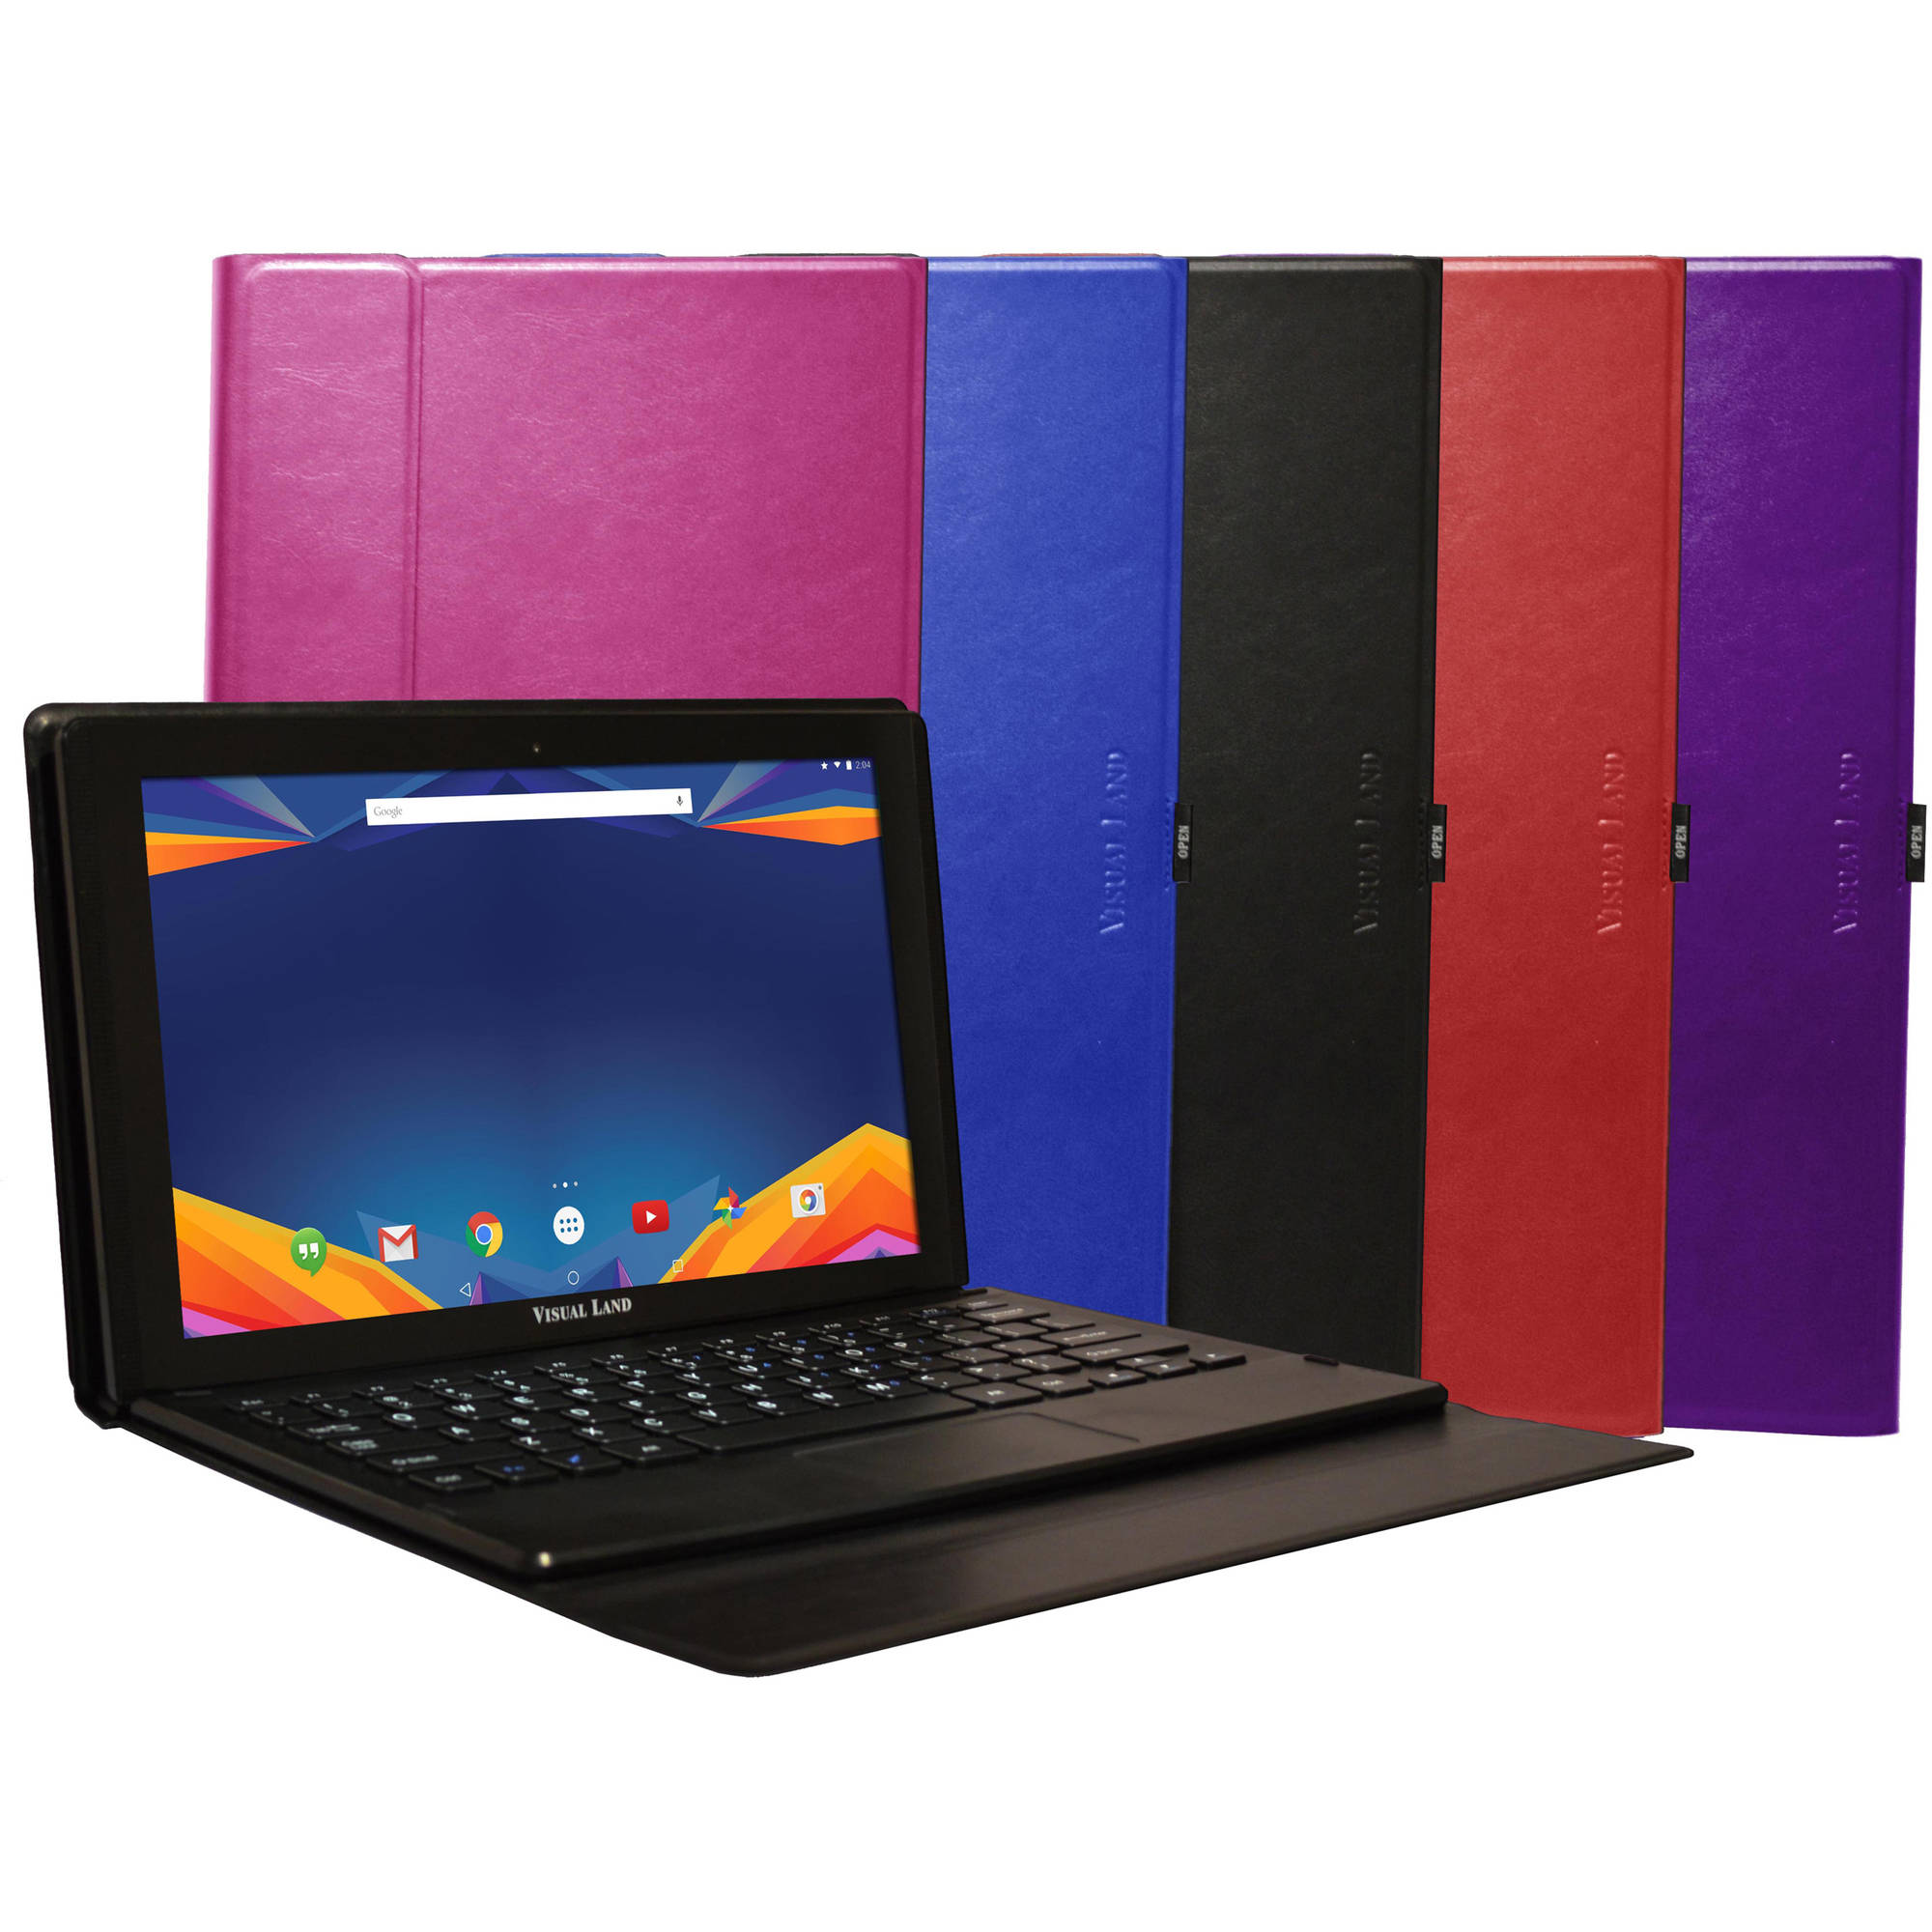 """Visual Land Prestige Prime with WiFi 11.6"""" Touchscreen Tablet PC Featuring Android 5.0 (Lollipop) Operating System"""